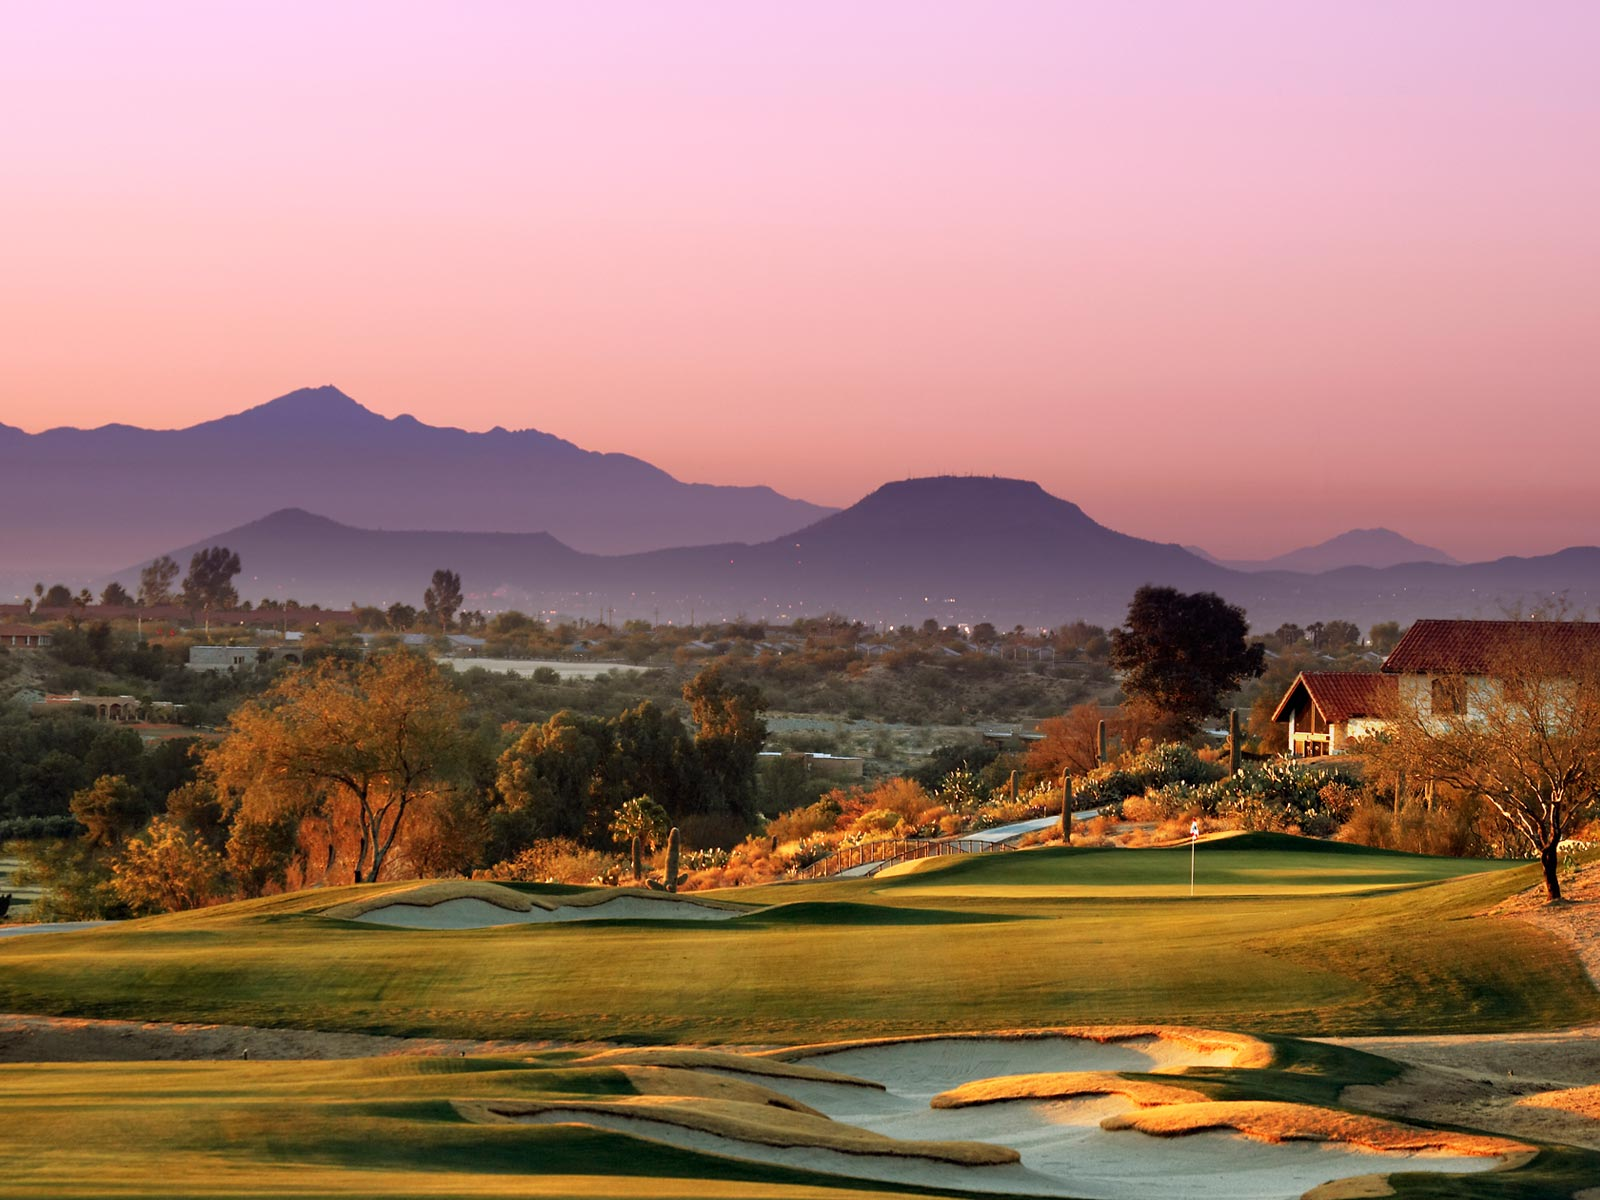 Golf Course Wallpaper 3551 Hd Wallpapers in Sports   Imagescicom 1600x1200